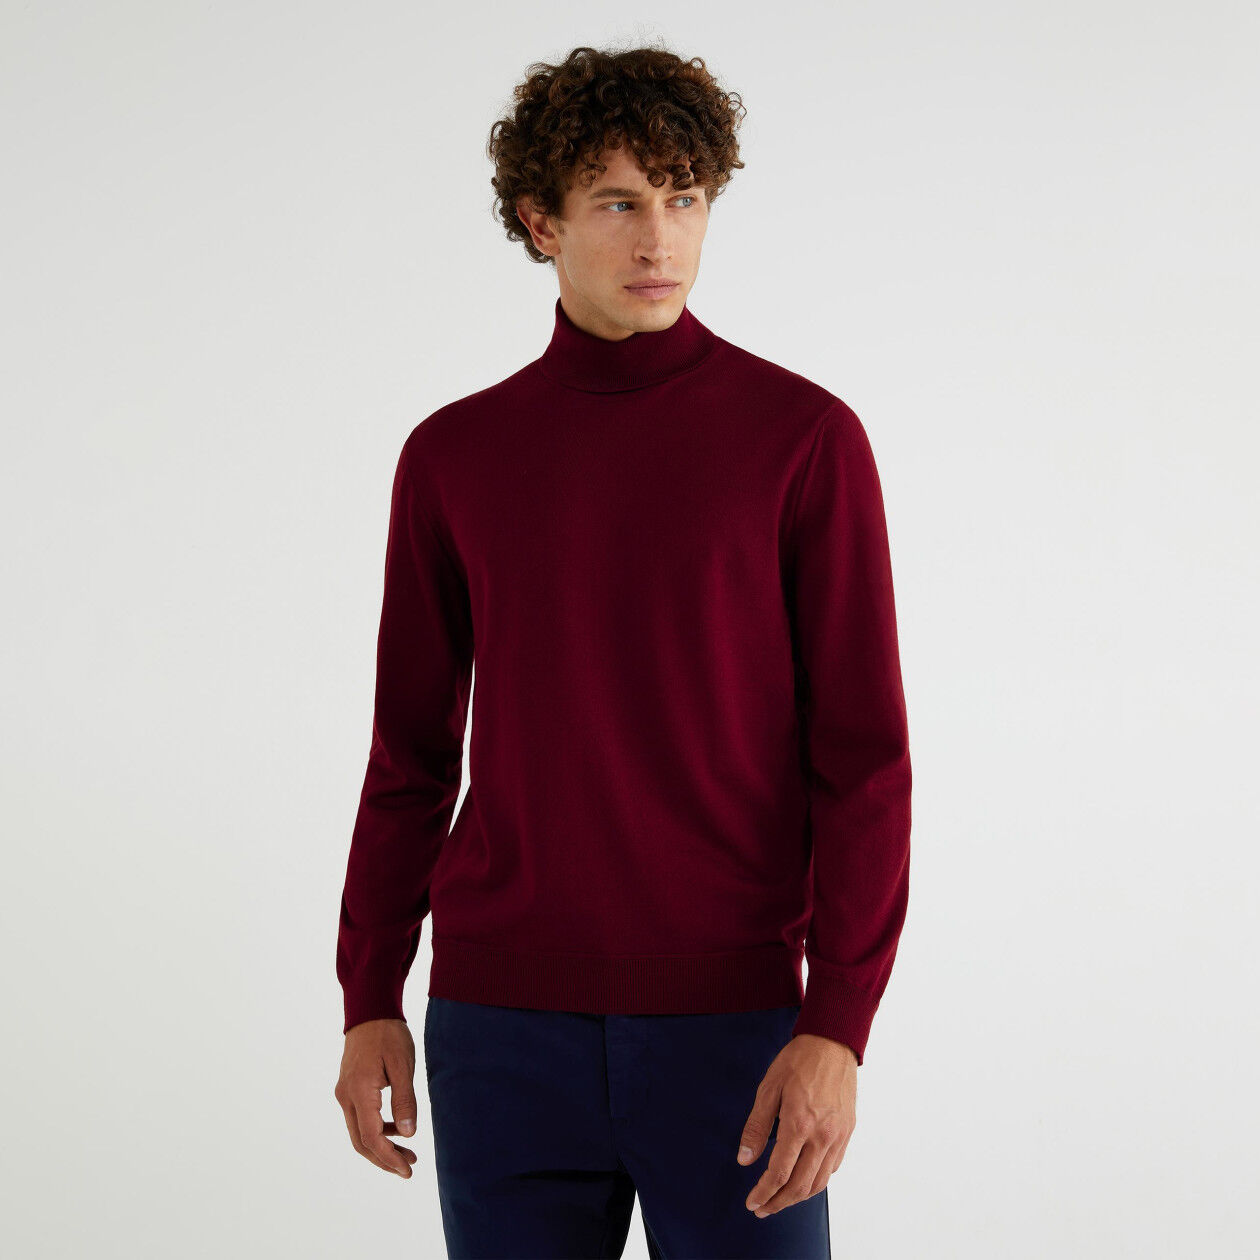 Turtleneck in 100% virgin wool